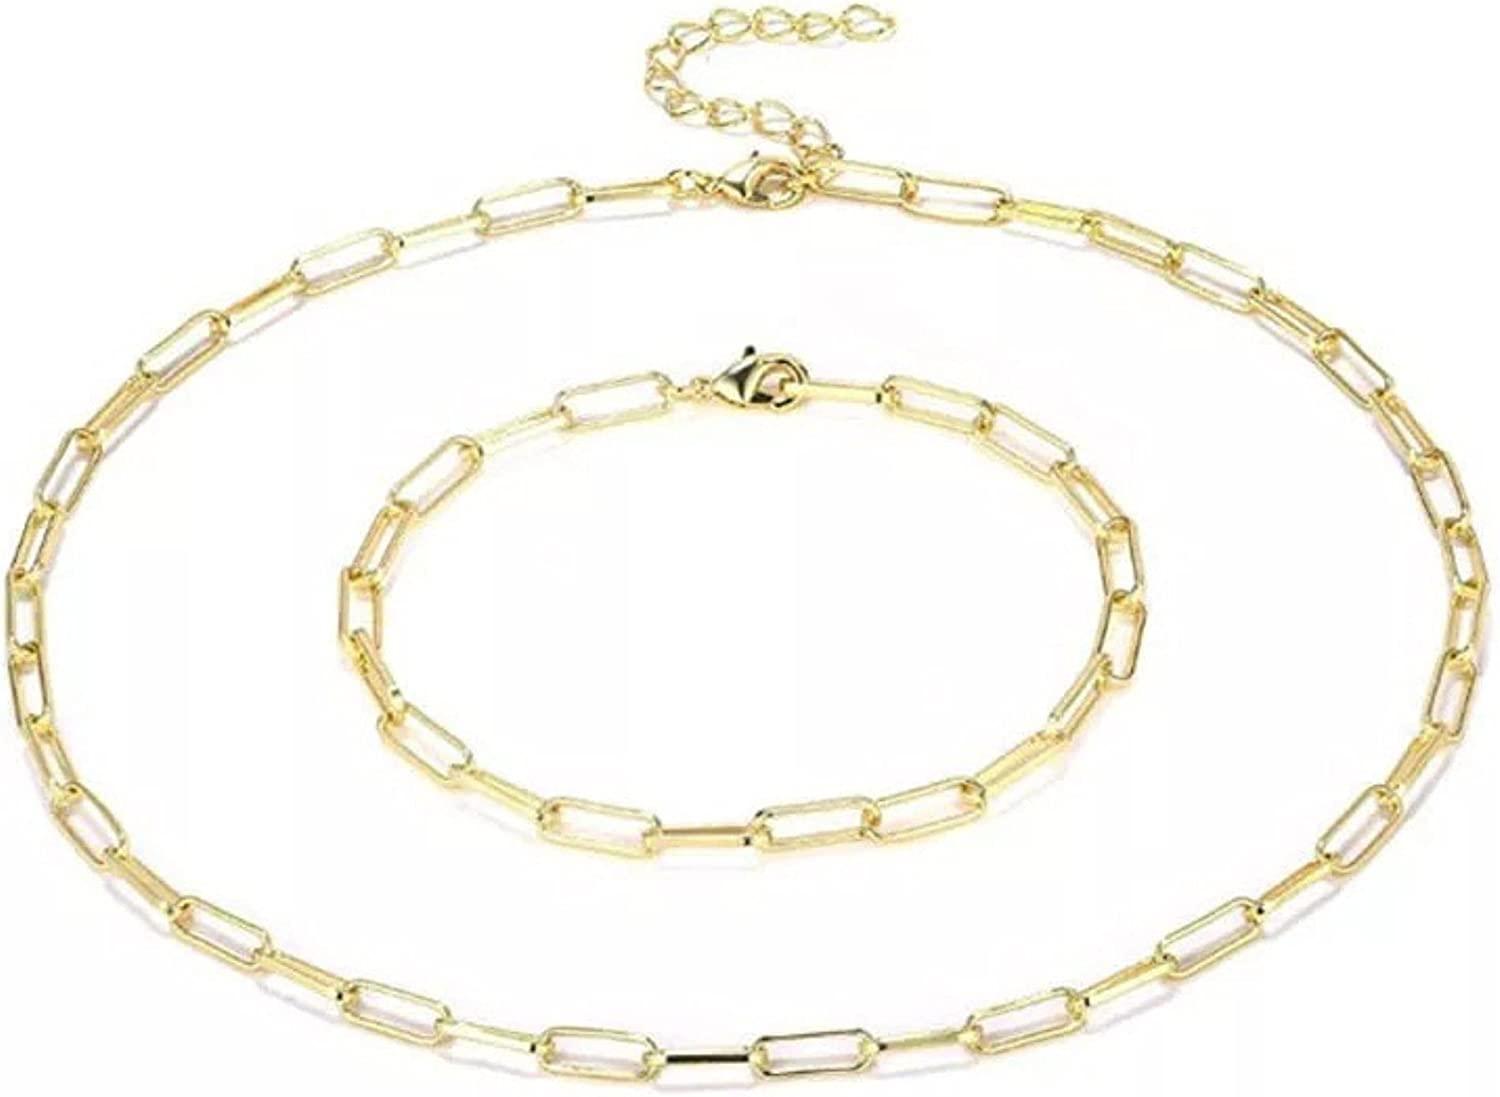 """Dainty 24"""" adjustable Paperclip 14K Gold Plated Paper Clip Circle Necklace Bracelet Set Gift for Women Girls"""